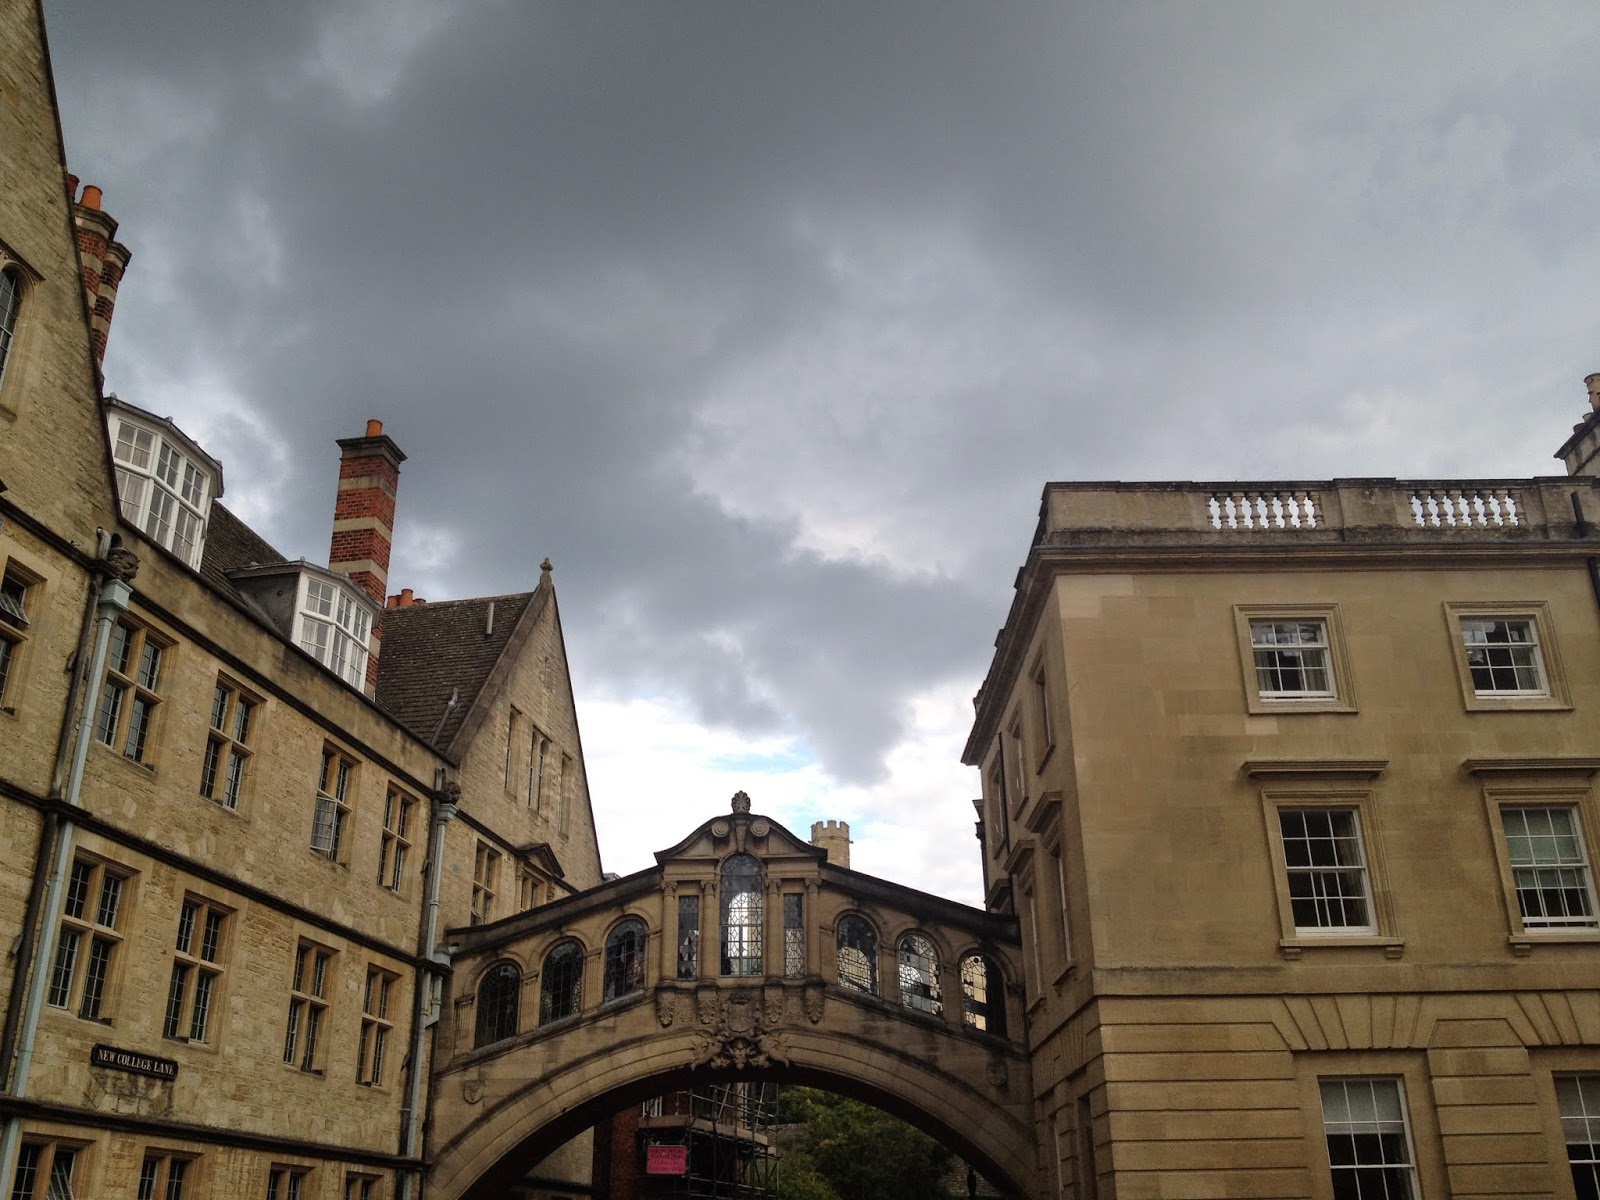 Oxford (photo credit: http://researchandramblings.blogspot.com/)